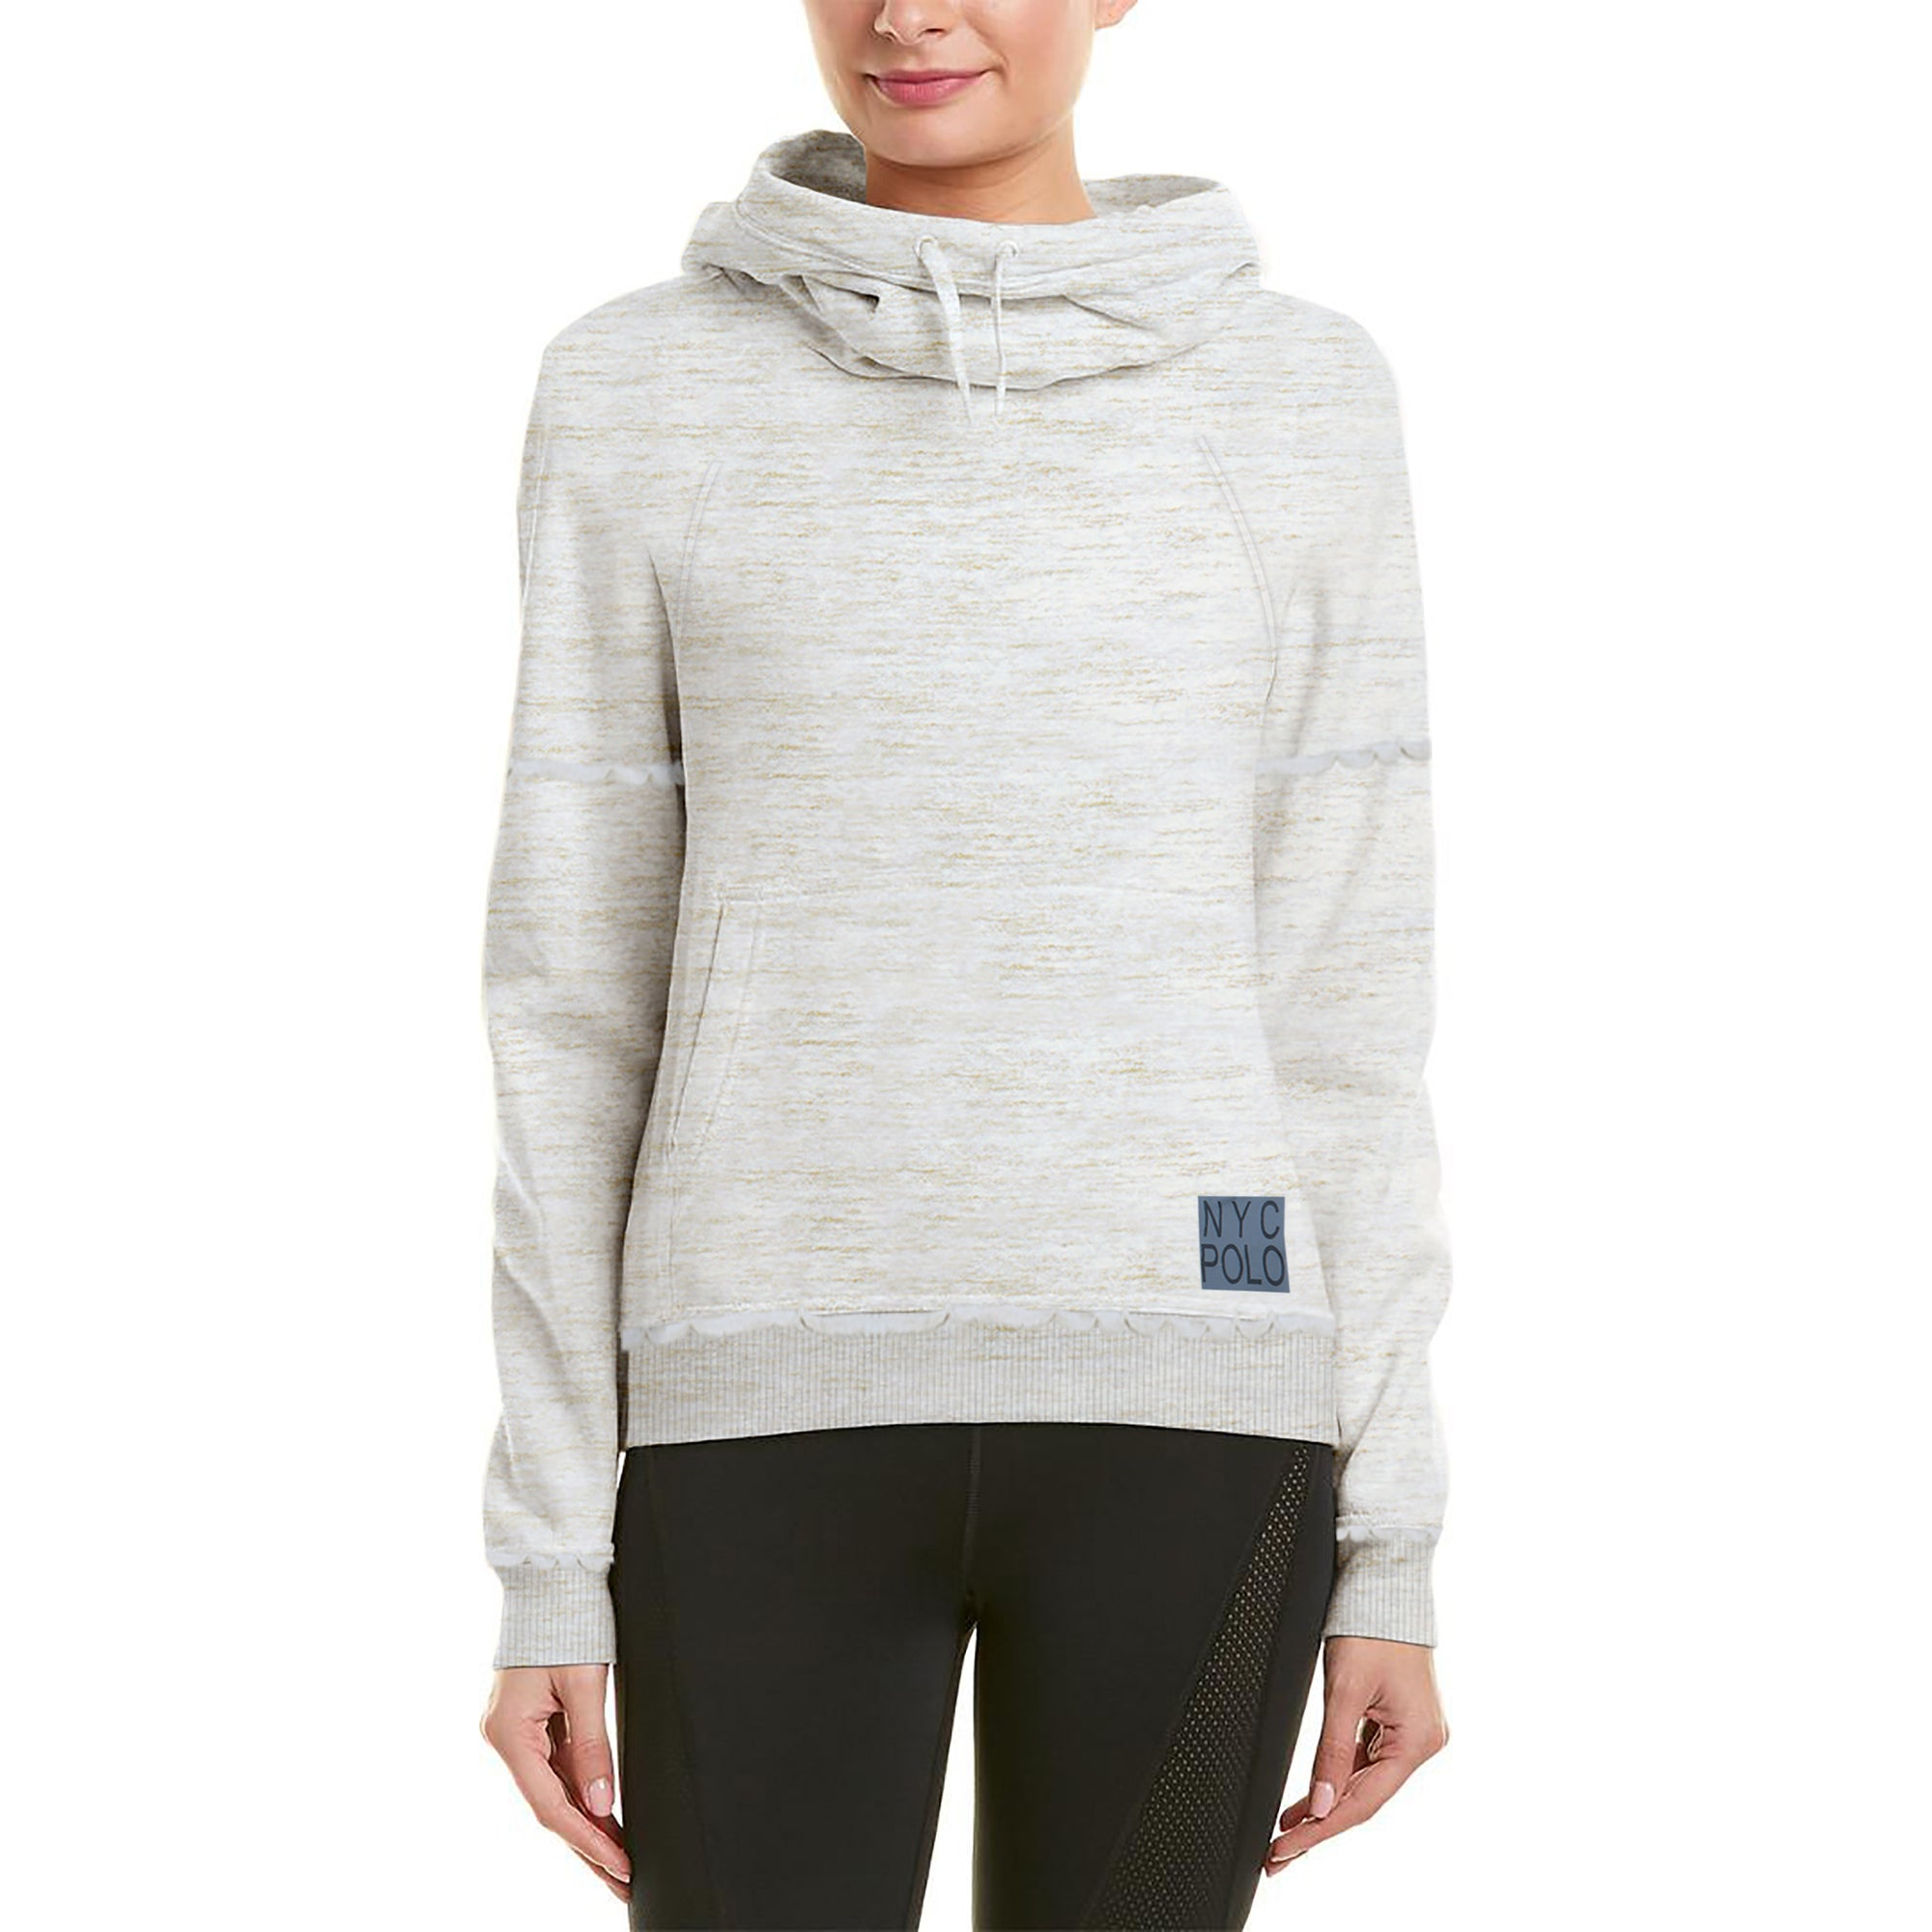 NYC Fleece Fleece Rally Funnel Neck For Ladies-Off White Melange-BE7025